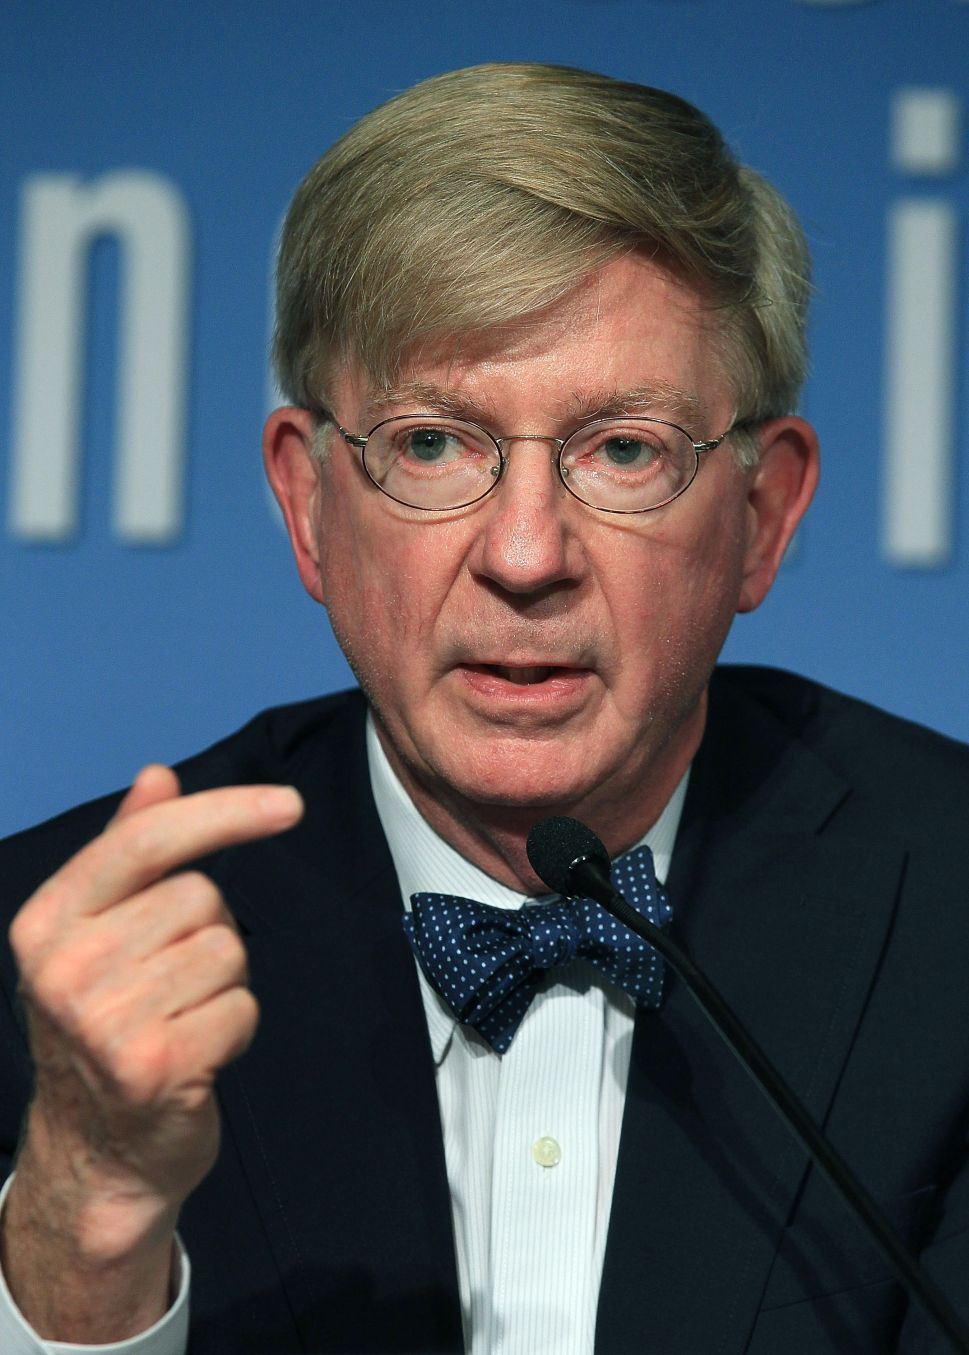 George Will Damns Bill O'Reilly, Again, in New Column